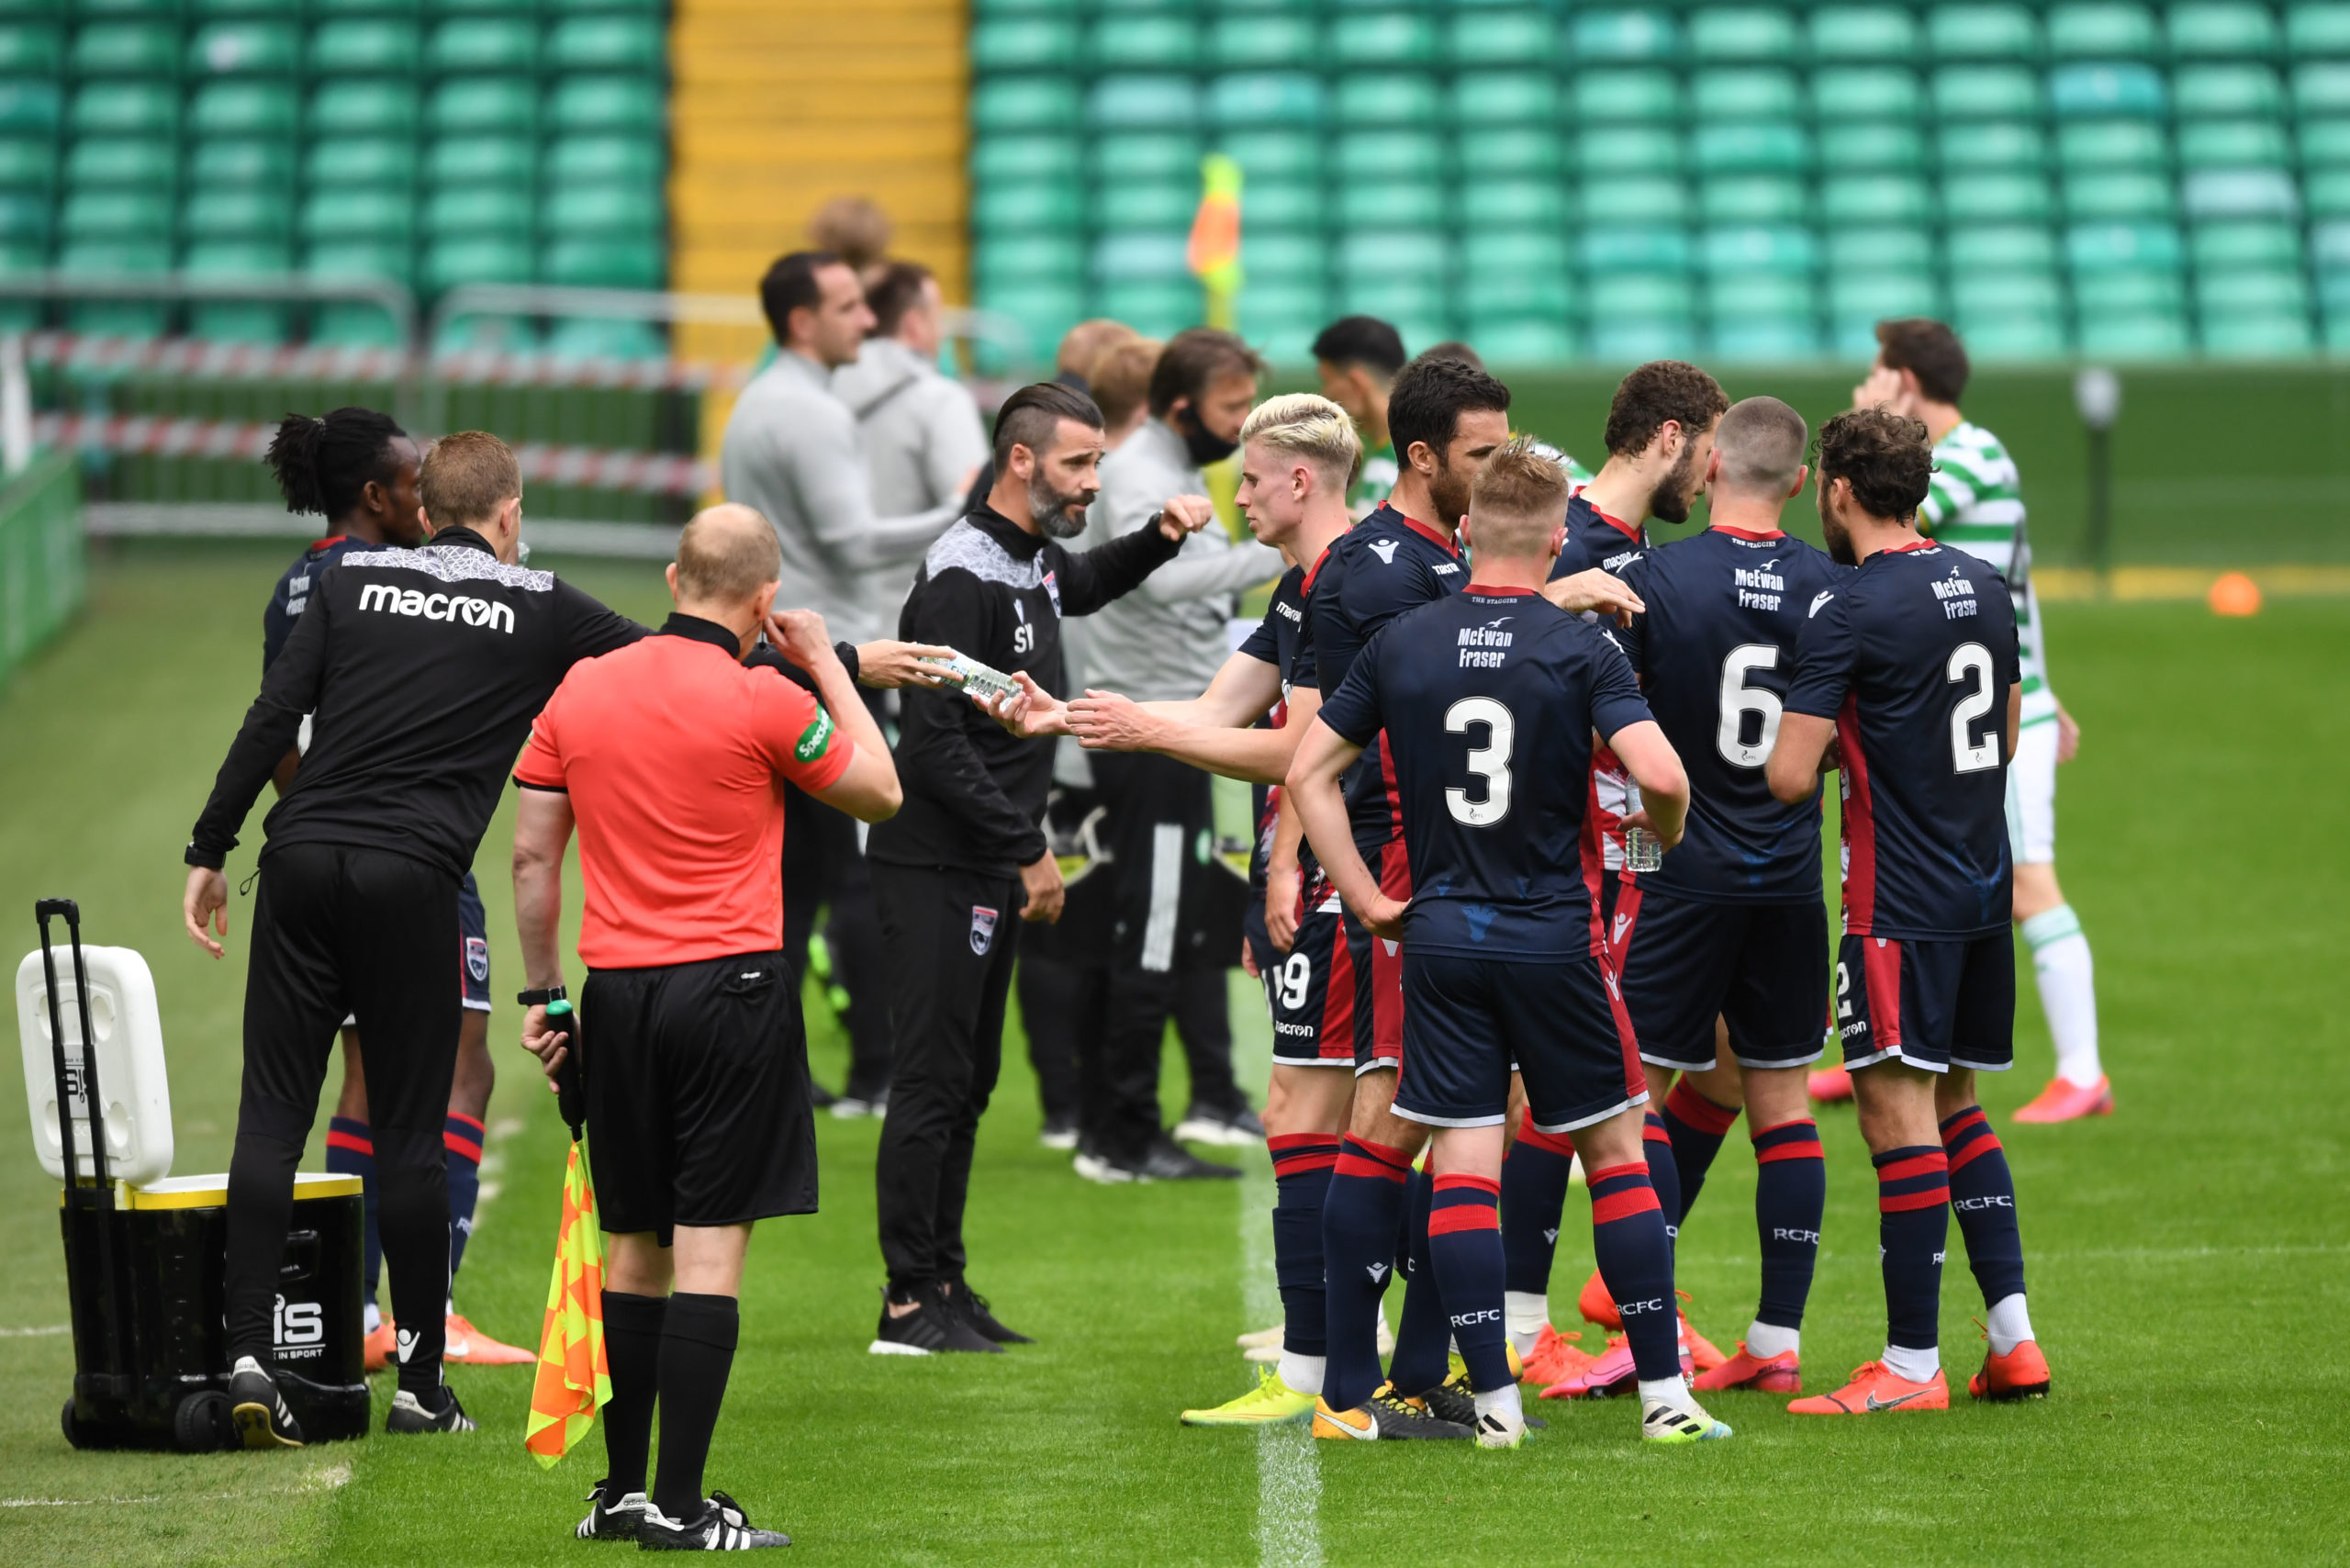 Ross County played Celtic in pre-season